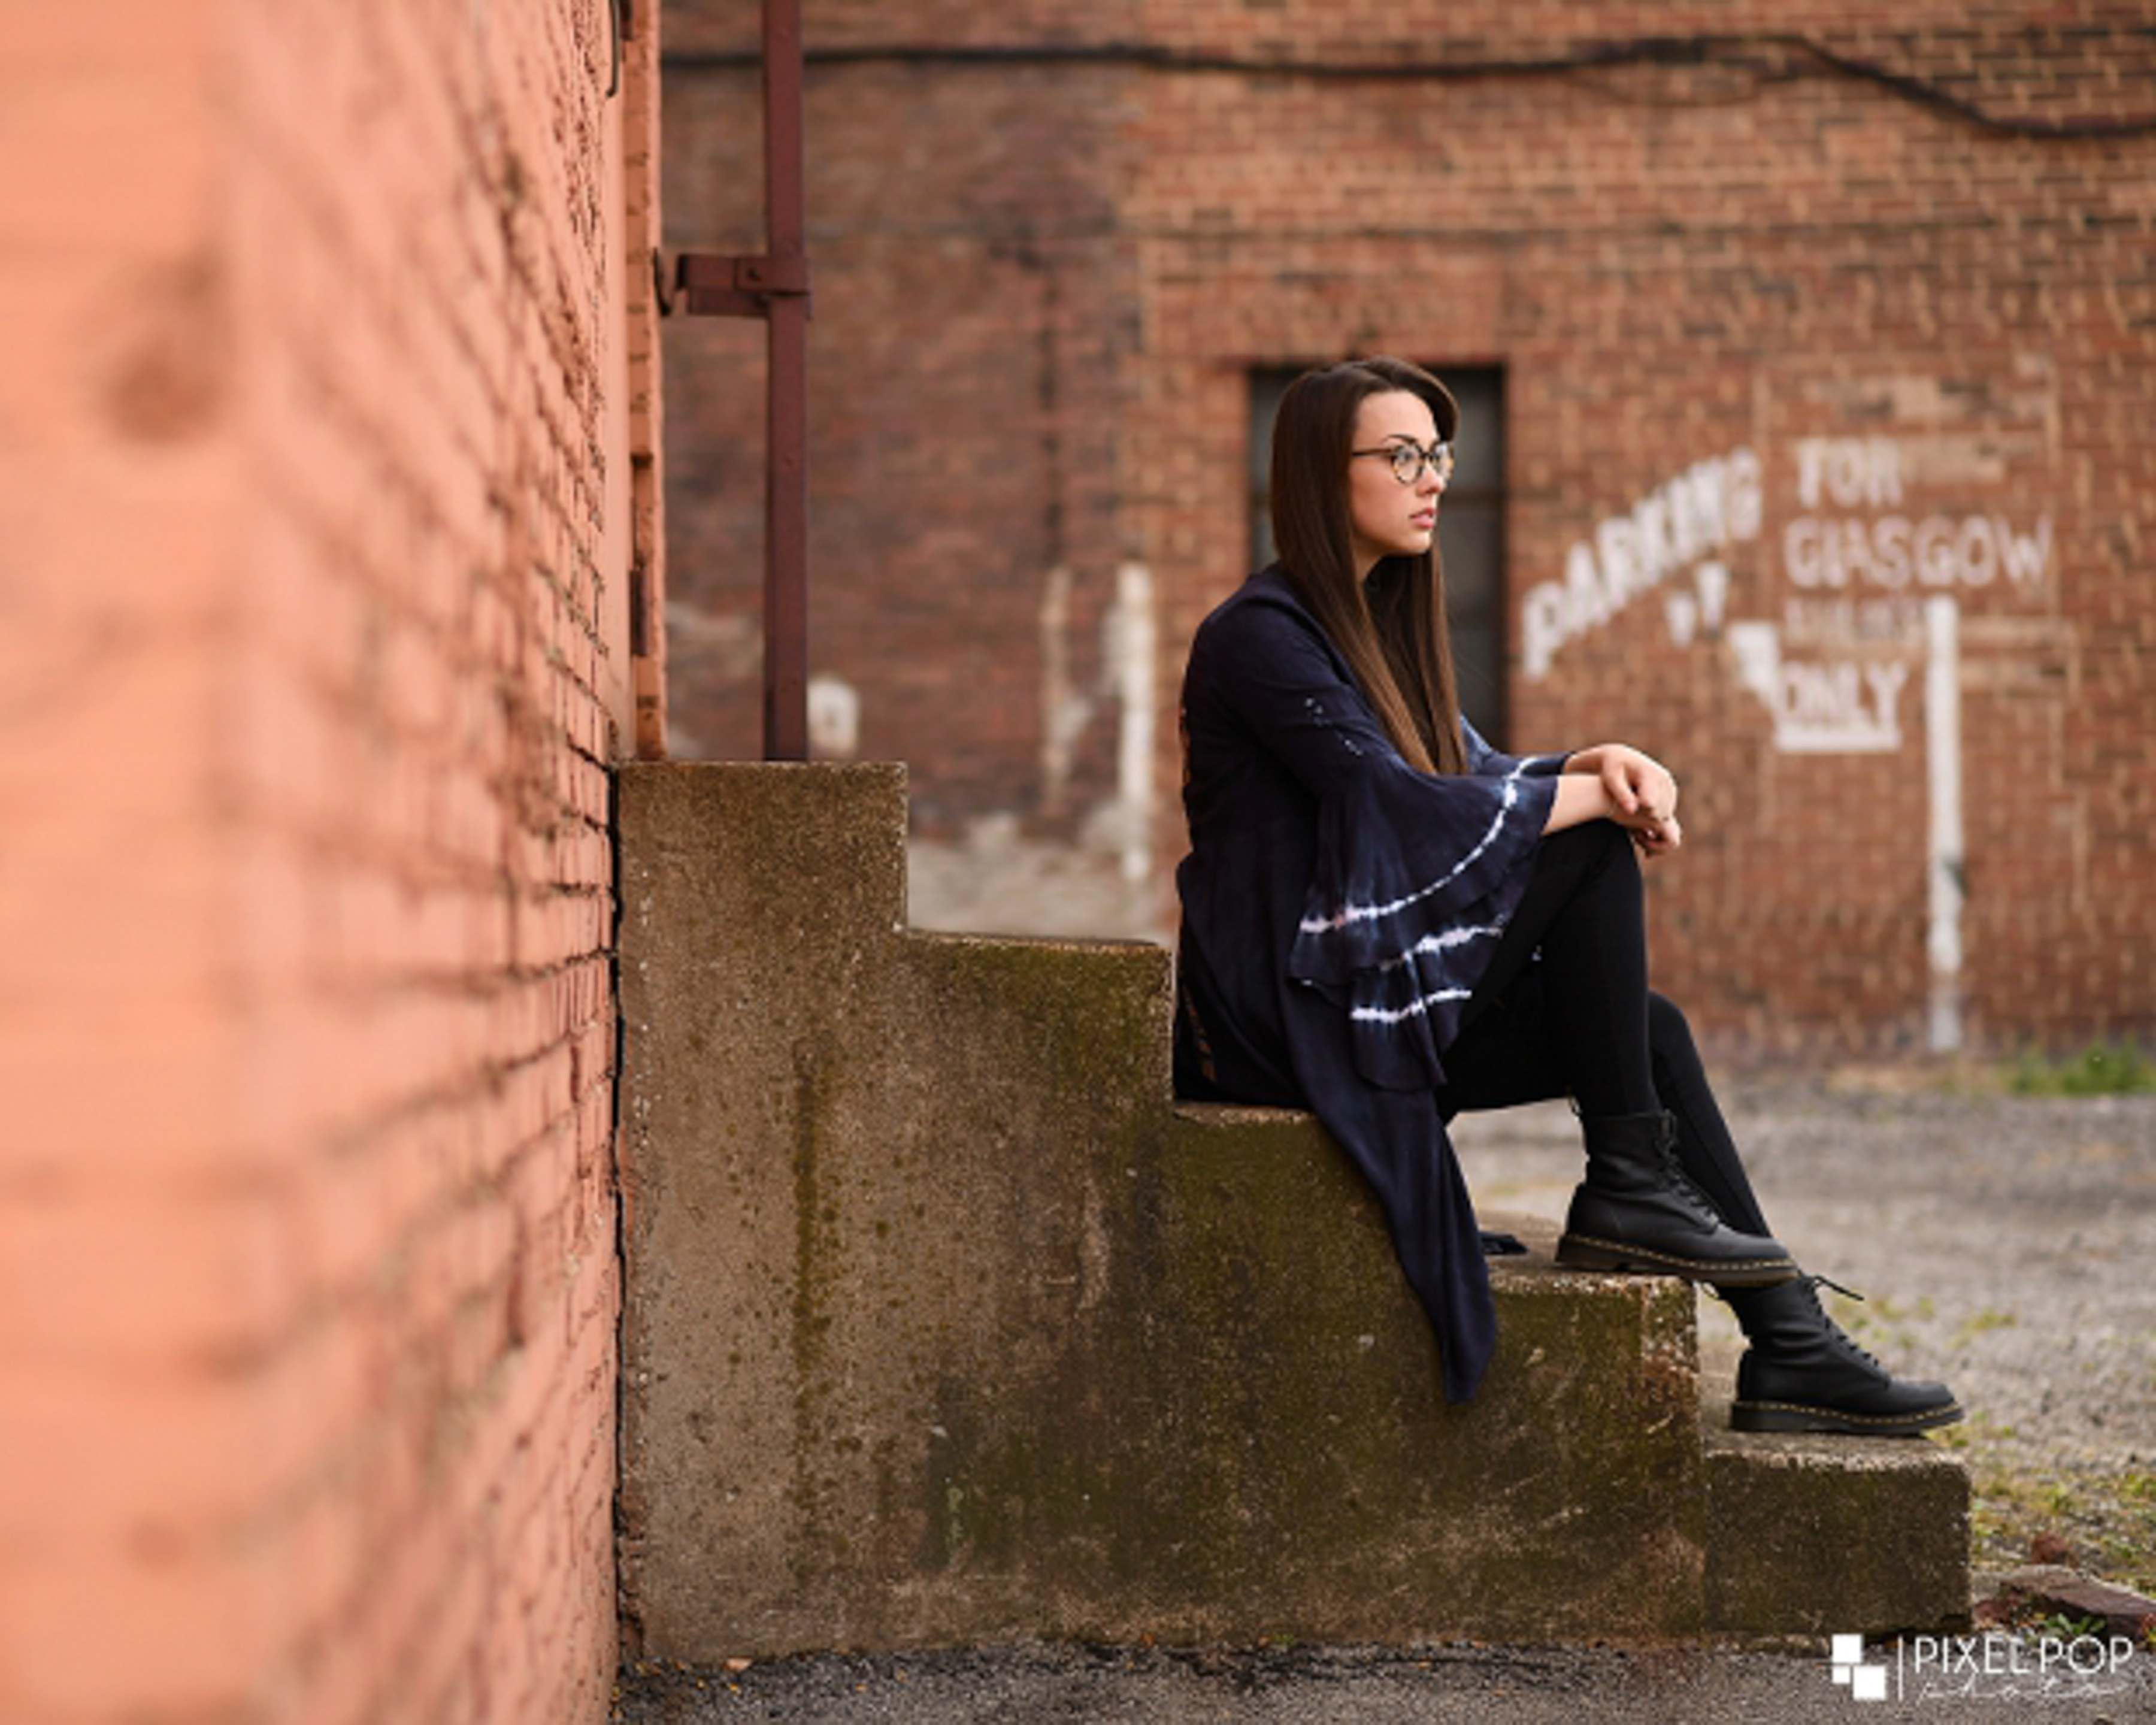 Best Youngstown senior photographer,Boardman senior photographer,Fellows Riverside Gardens senior session,Mill Creek Park senior session,Pixel Pop Photo,Pixel Pop Photography,Youngstown senior photographer,downtown Youngstown senior session,